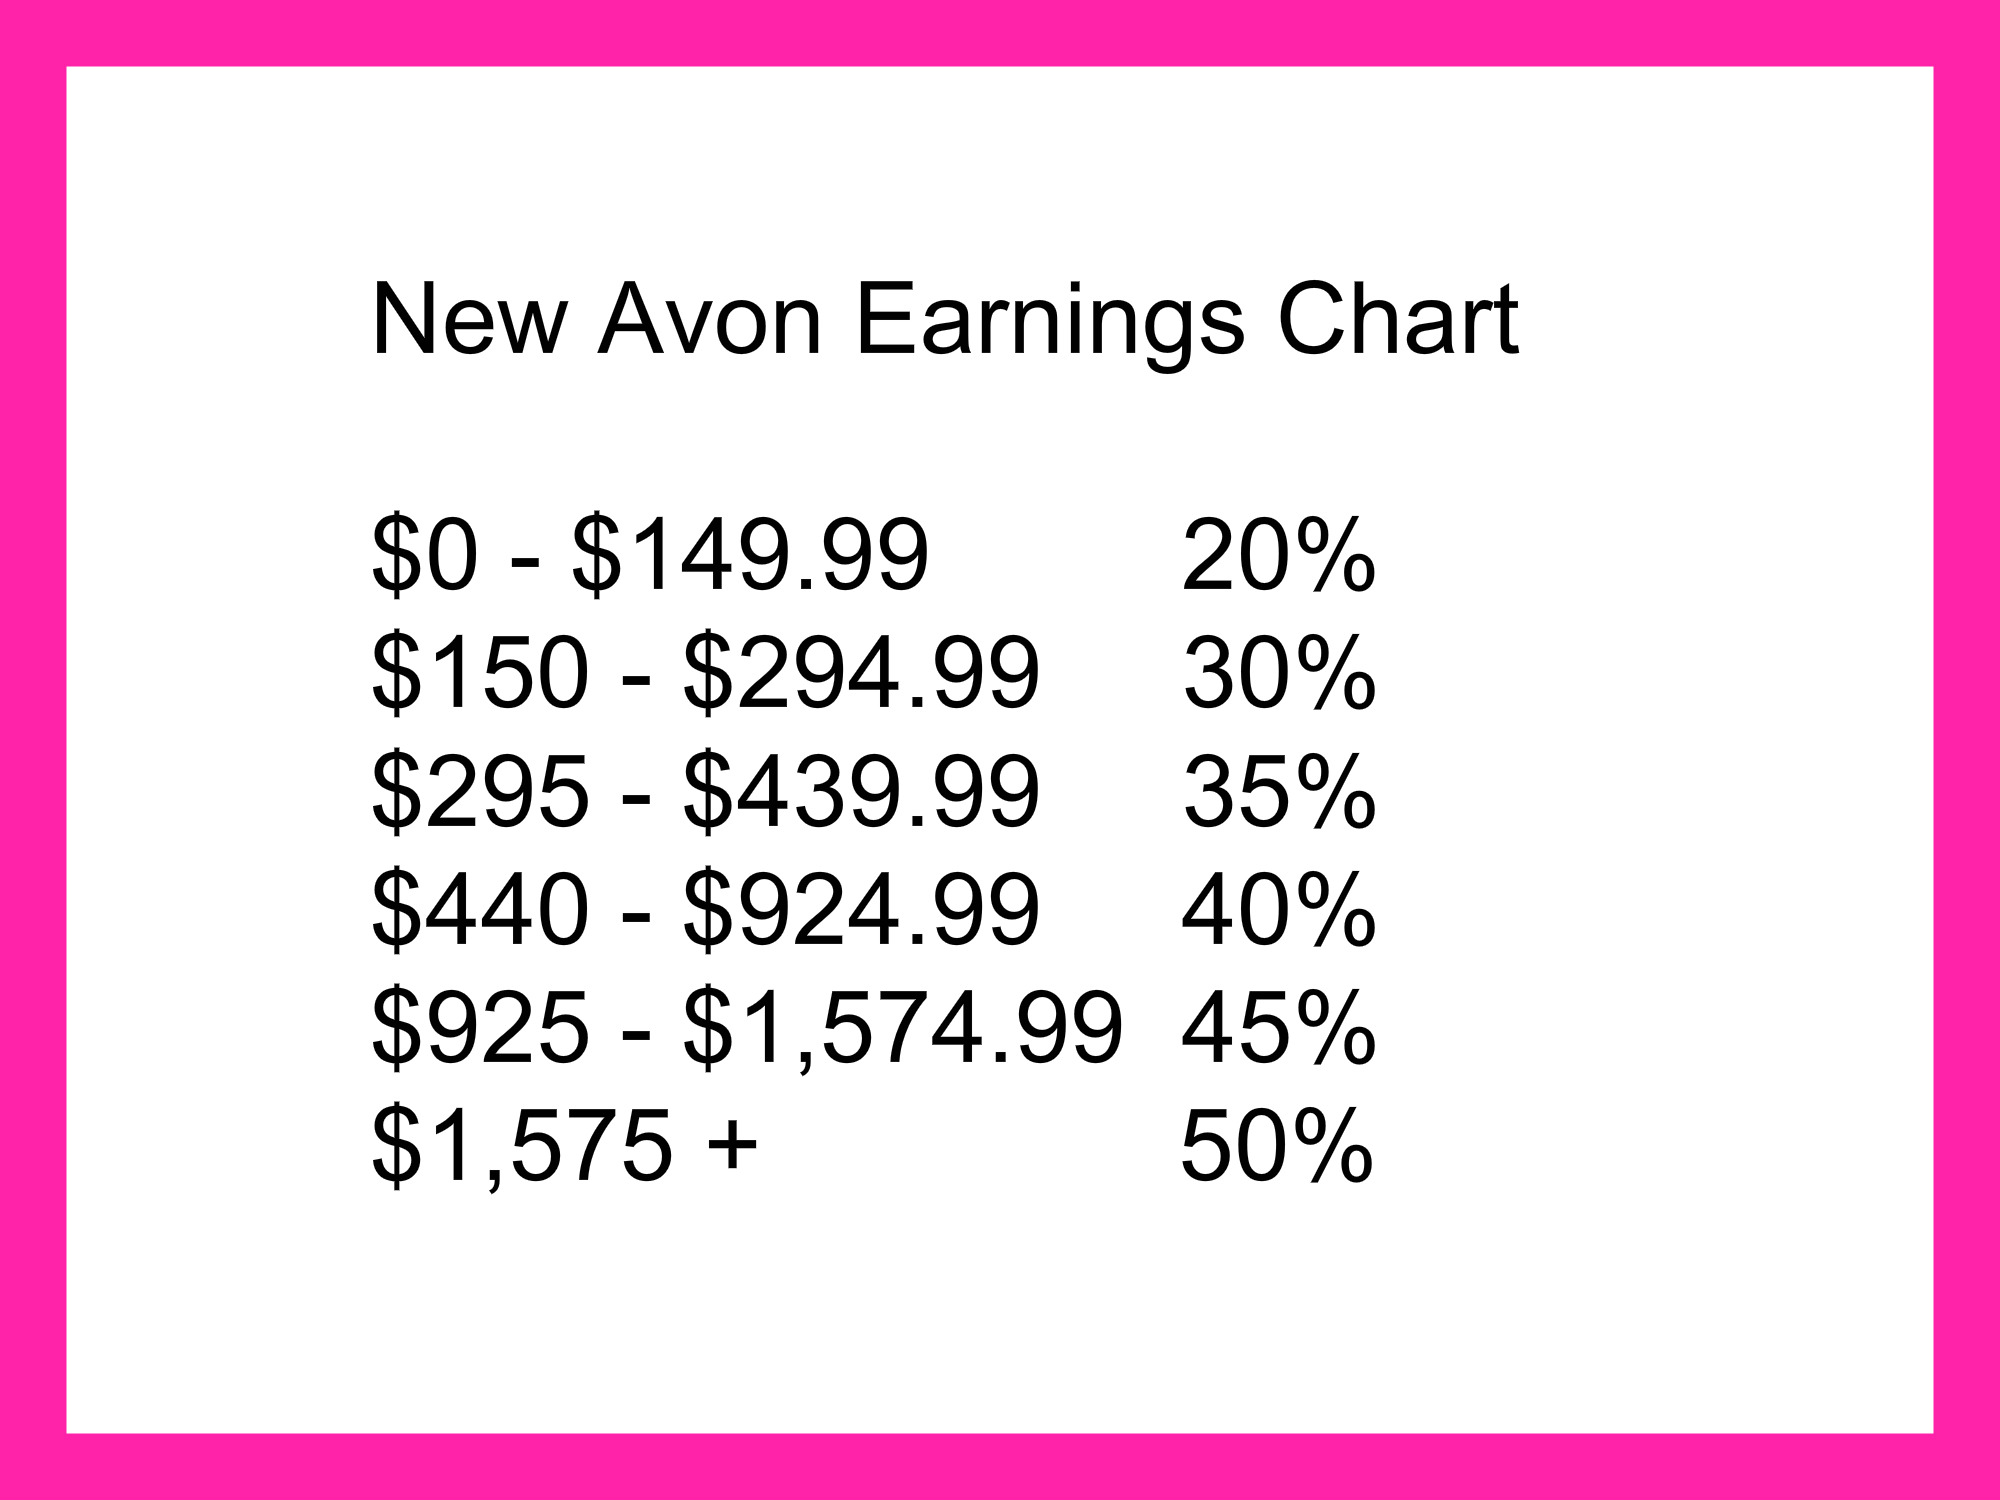 Avon Representative Earnings Chart - Shirl's Glitz & Glam